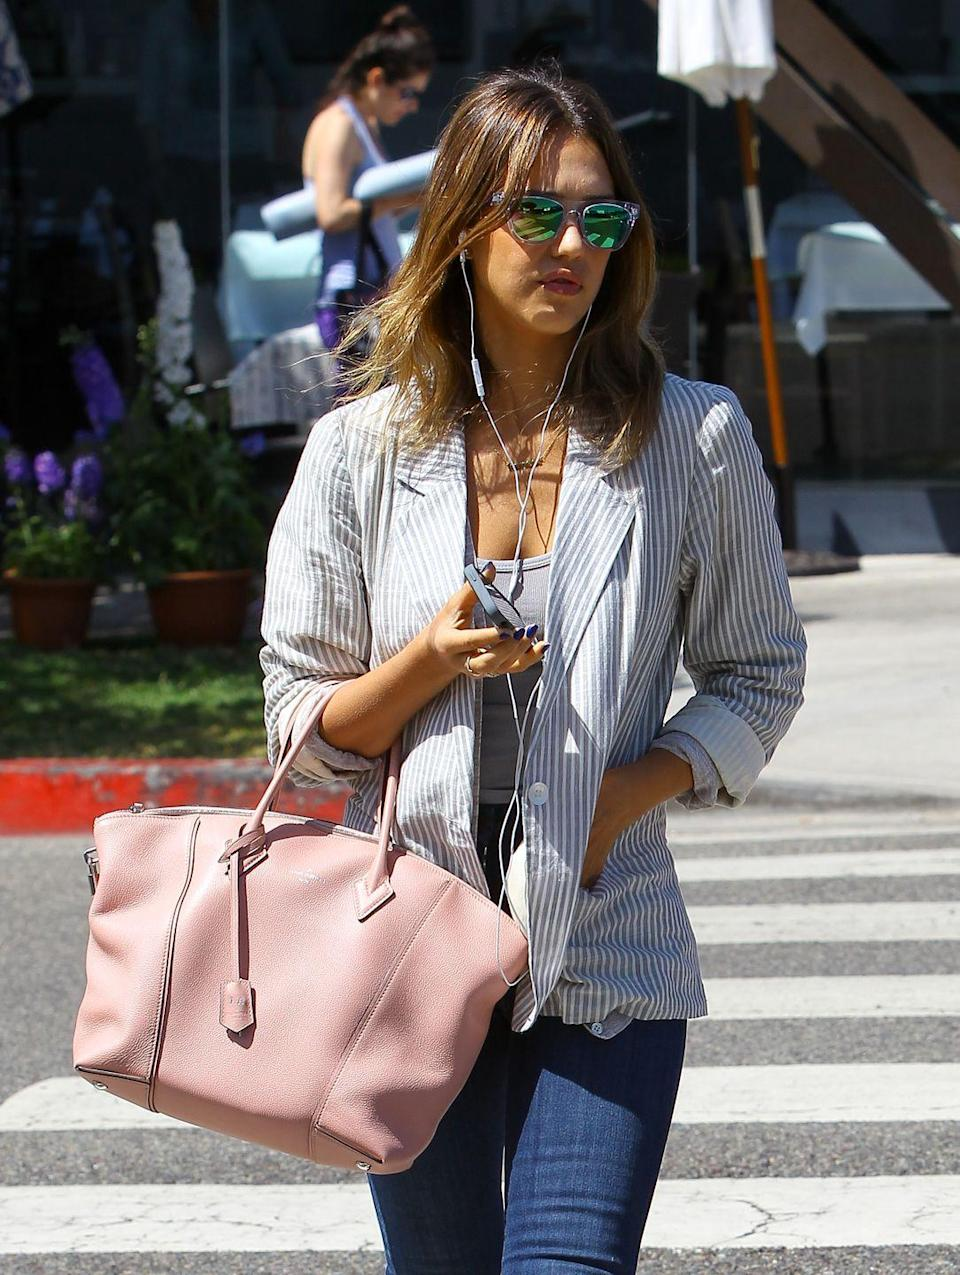 """<p>This is crucial, Jessica says. 'I definitely always have Drake, Jay-Z, Kanye, I have some new artists that I've been listening to a lot,' she told <a href=""""https://www.byrdie.com/jessica-alba-diet-fitness-tips"""" rel=""""nofollow noopener"""" target=""""_blank"""" data-ylk=""""slk:Byrdie"""" class=""""link rapid-noclick-resp"""">Byrdie</a>. 'I like any kind of West Coast rapper—usually more hip-hop and rap and less pop music.' <br></p>"""